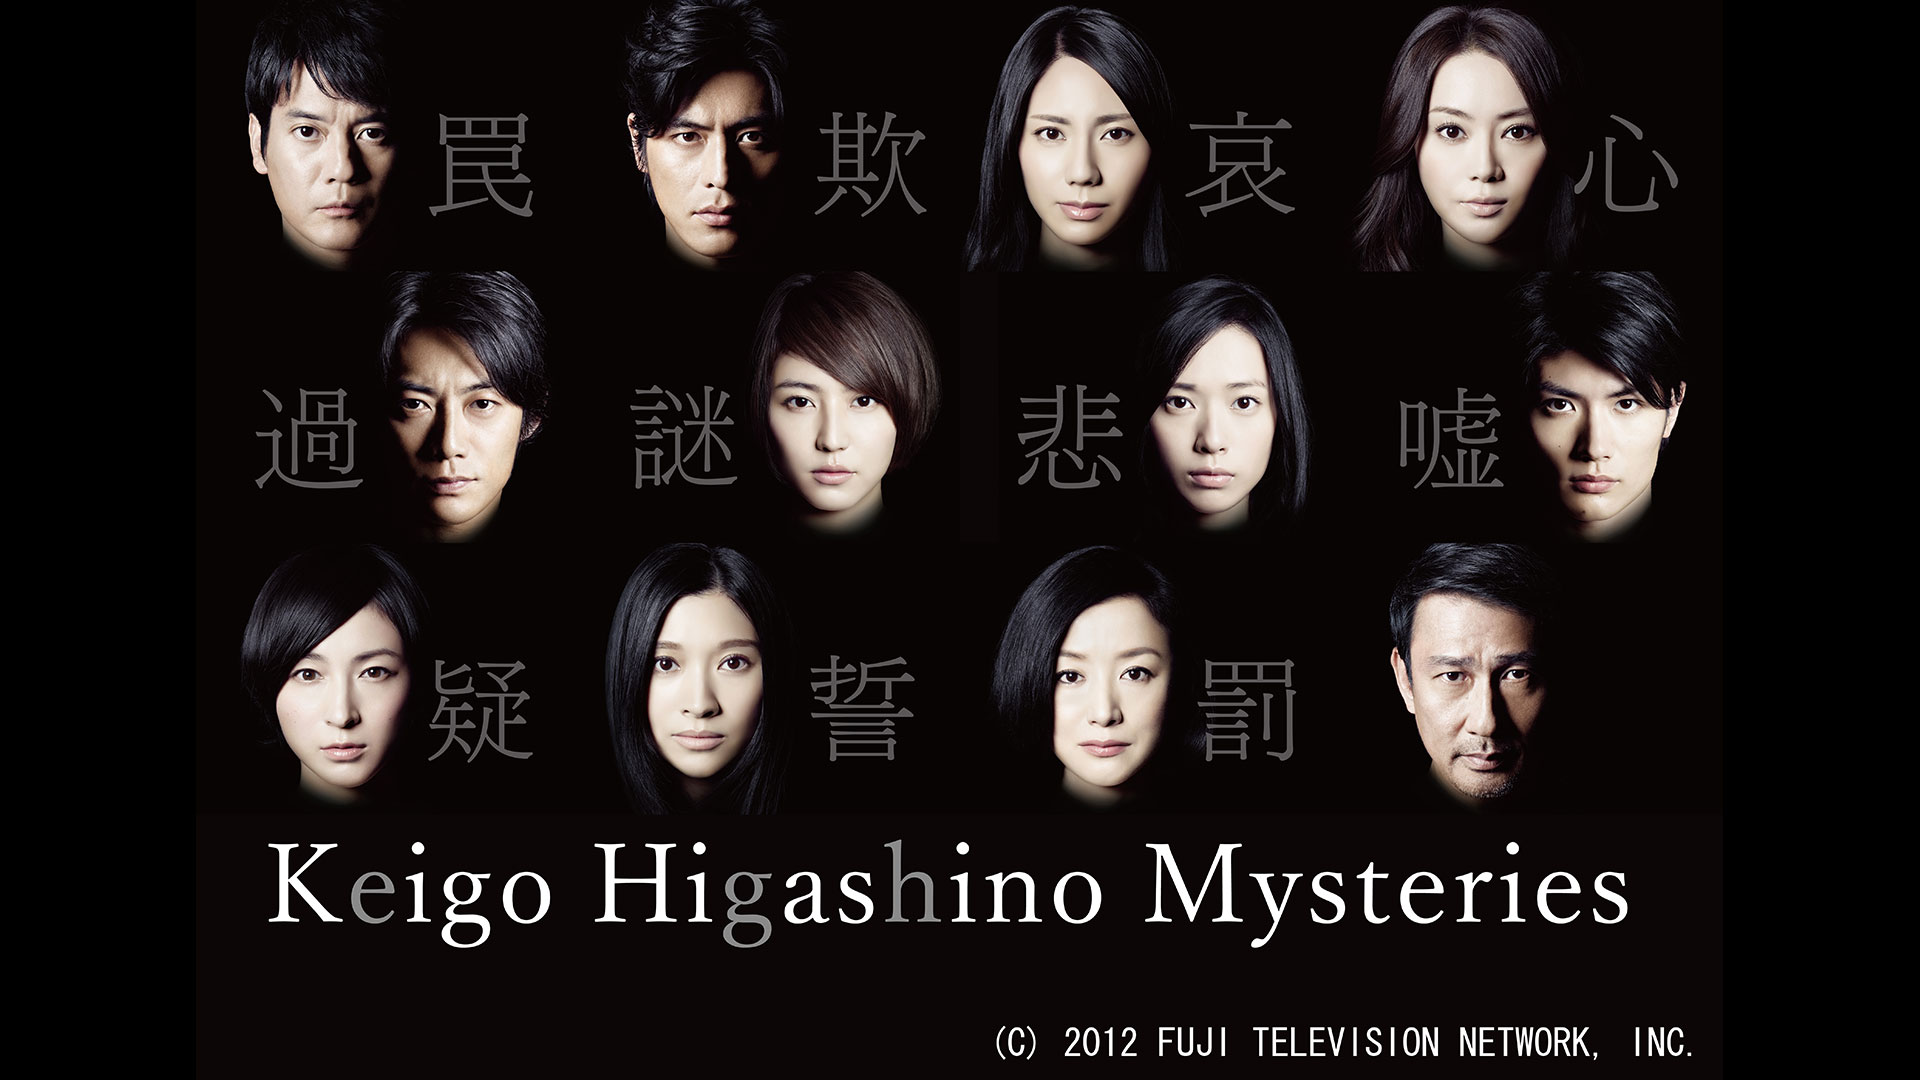 Keigo Higashino Mysteries 11 - The Mistress of Reincarnation